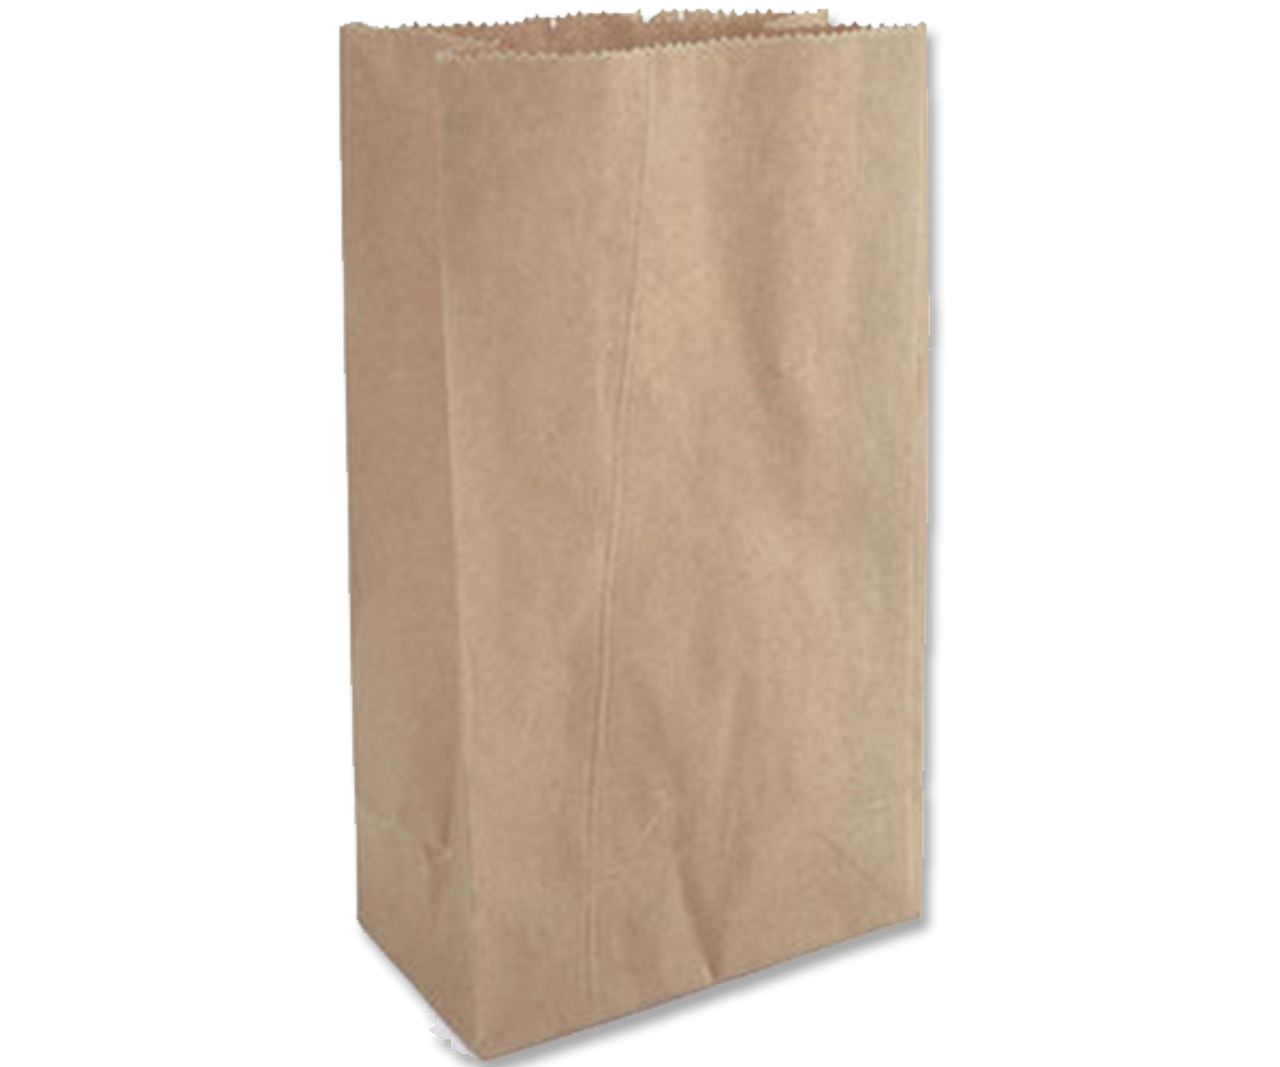 Hardware Store Bags